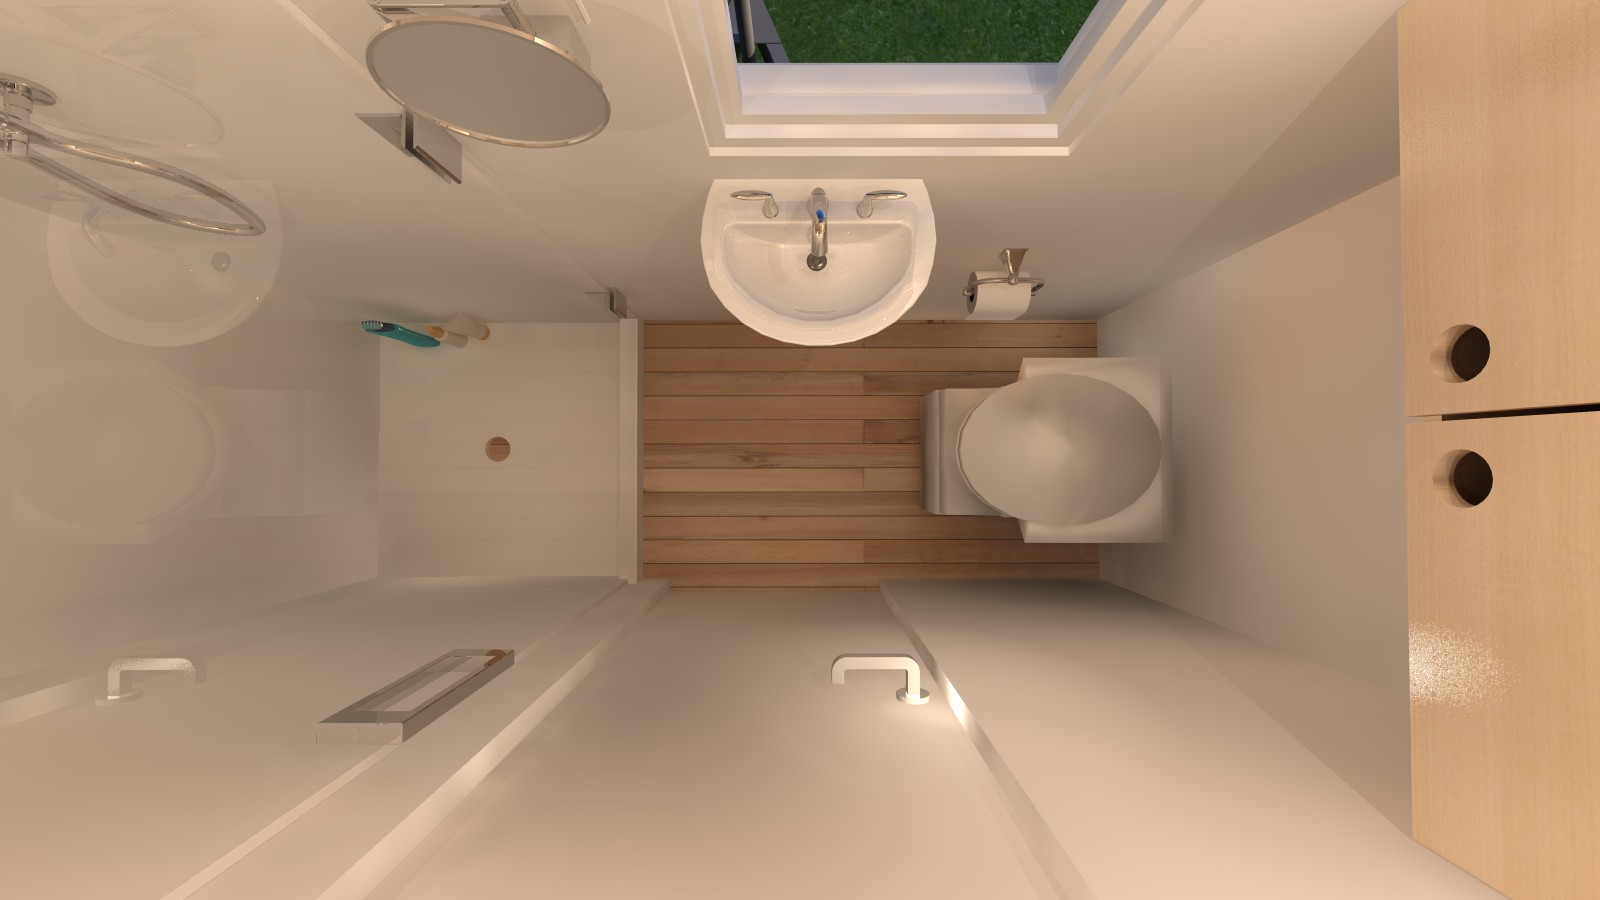 Manchester 14 tiny house plans - Toilet design small space property ...